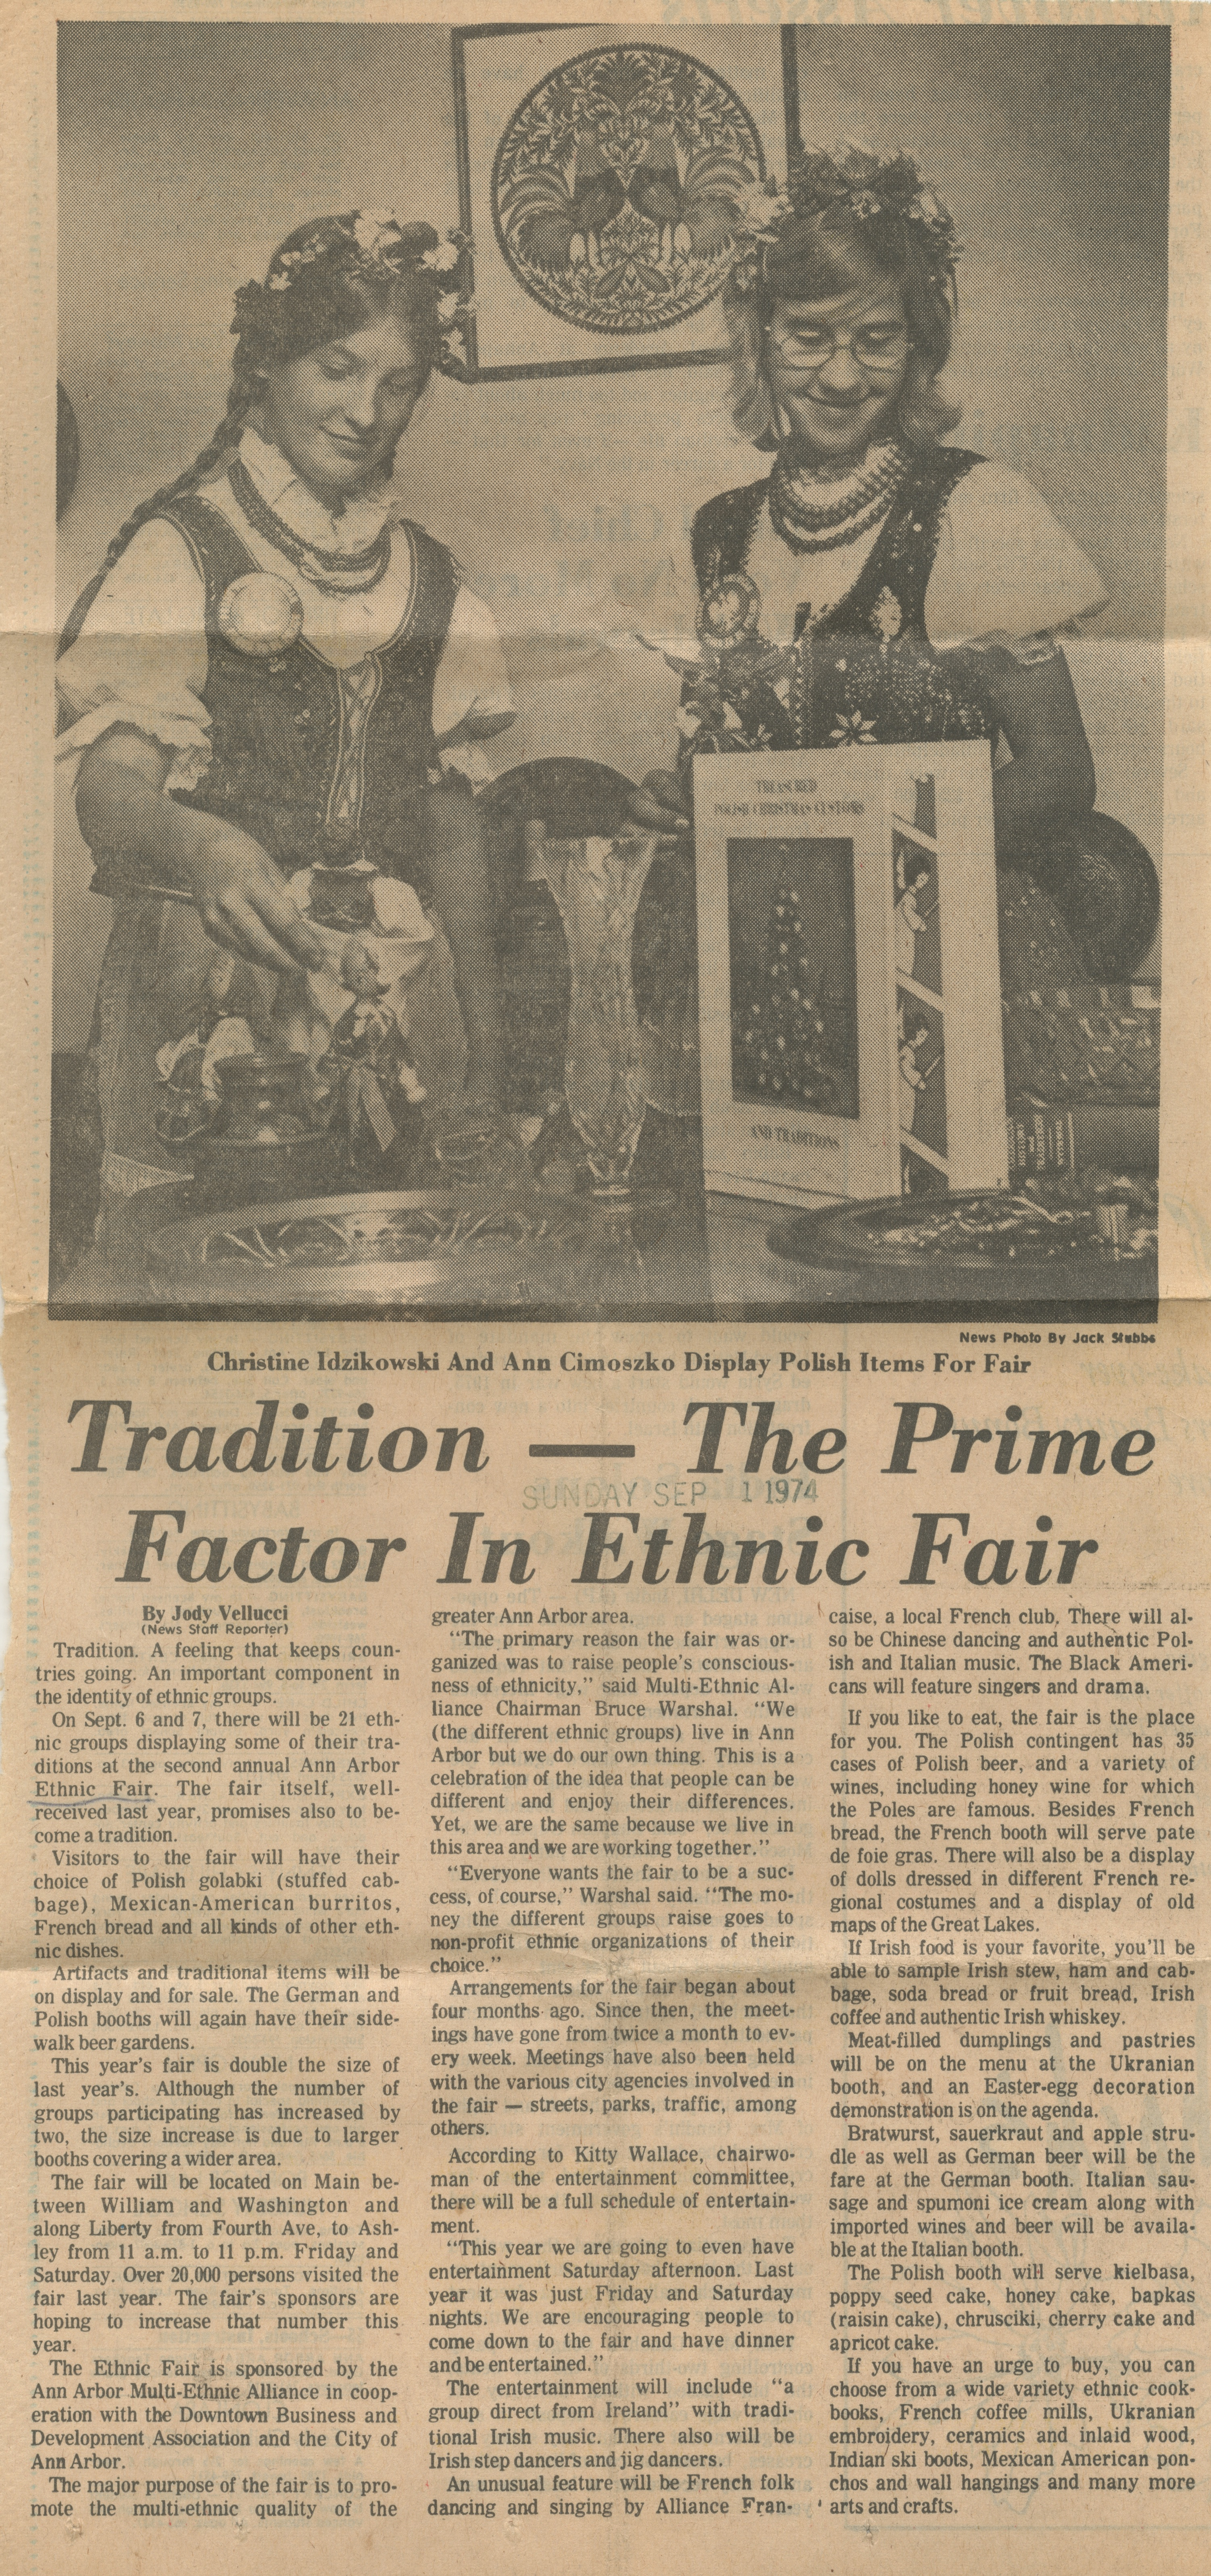 Tradition - The Prime Factor in Ethnic Fair image